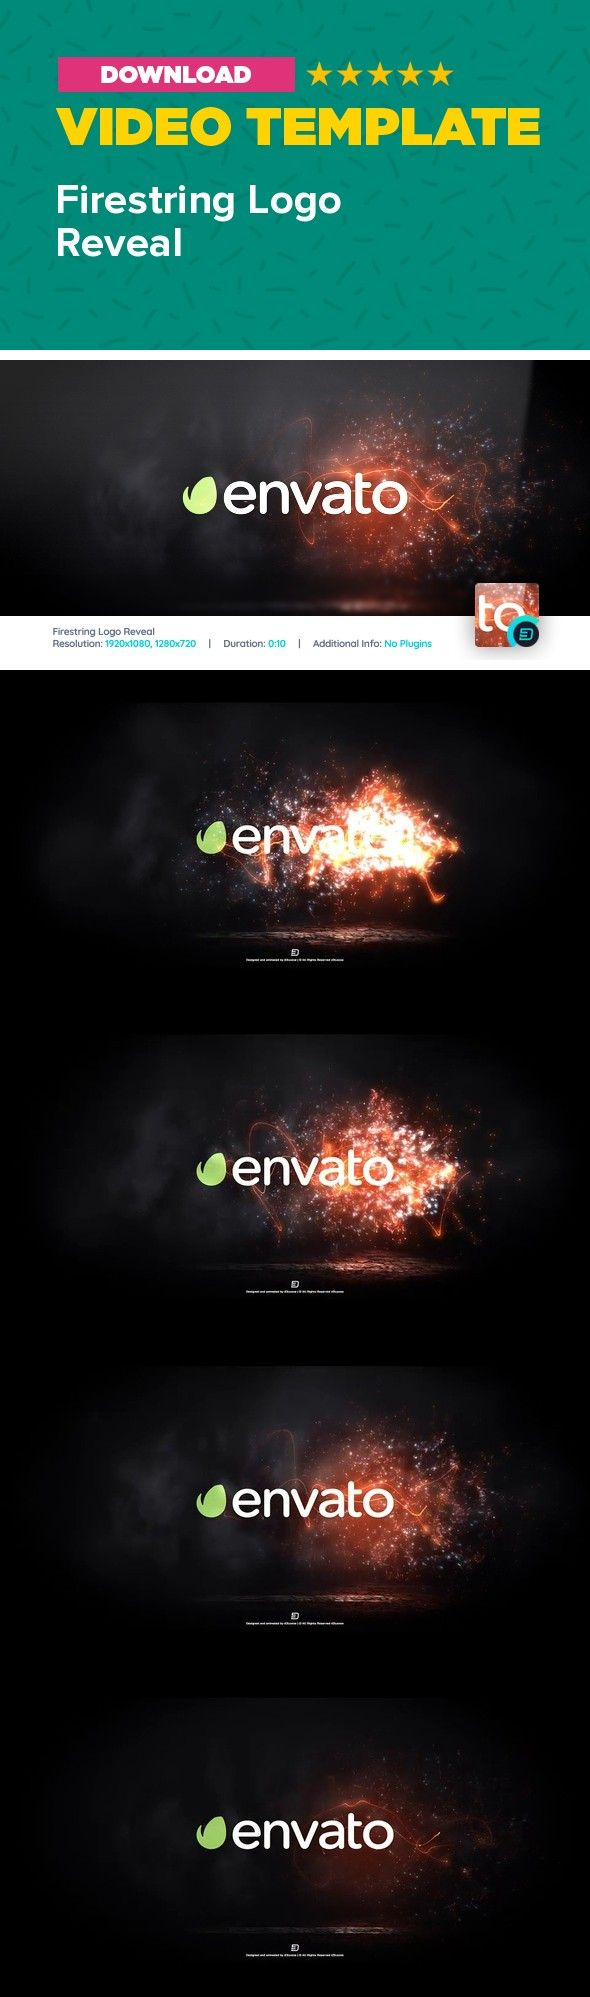 cinematic, dark, energy, fire, intro, light, opener, organic, particle reveal, particles, reveal, reverse, slow motion, smoke, string  Short description   Firestring Logo features modern and energetic design combined with slow motion particles and dark smokey ambience. Customization is really easy – drop in your logo, adjust the colors to your needs and hit Render. Works with any LOGO or TEXT! Perfect as an opener or intro to your slideshows, presentations, TV shows, products, Vlog, gaming…